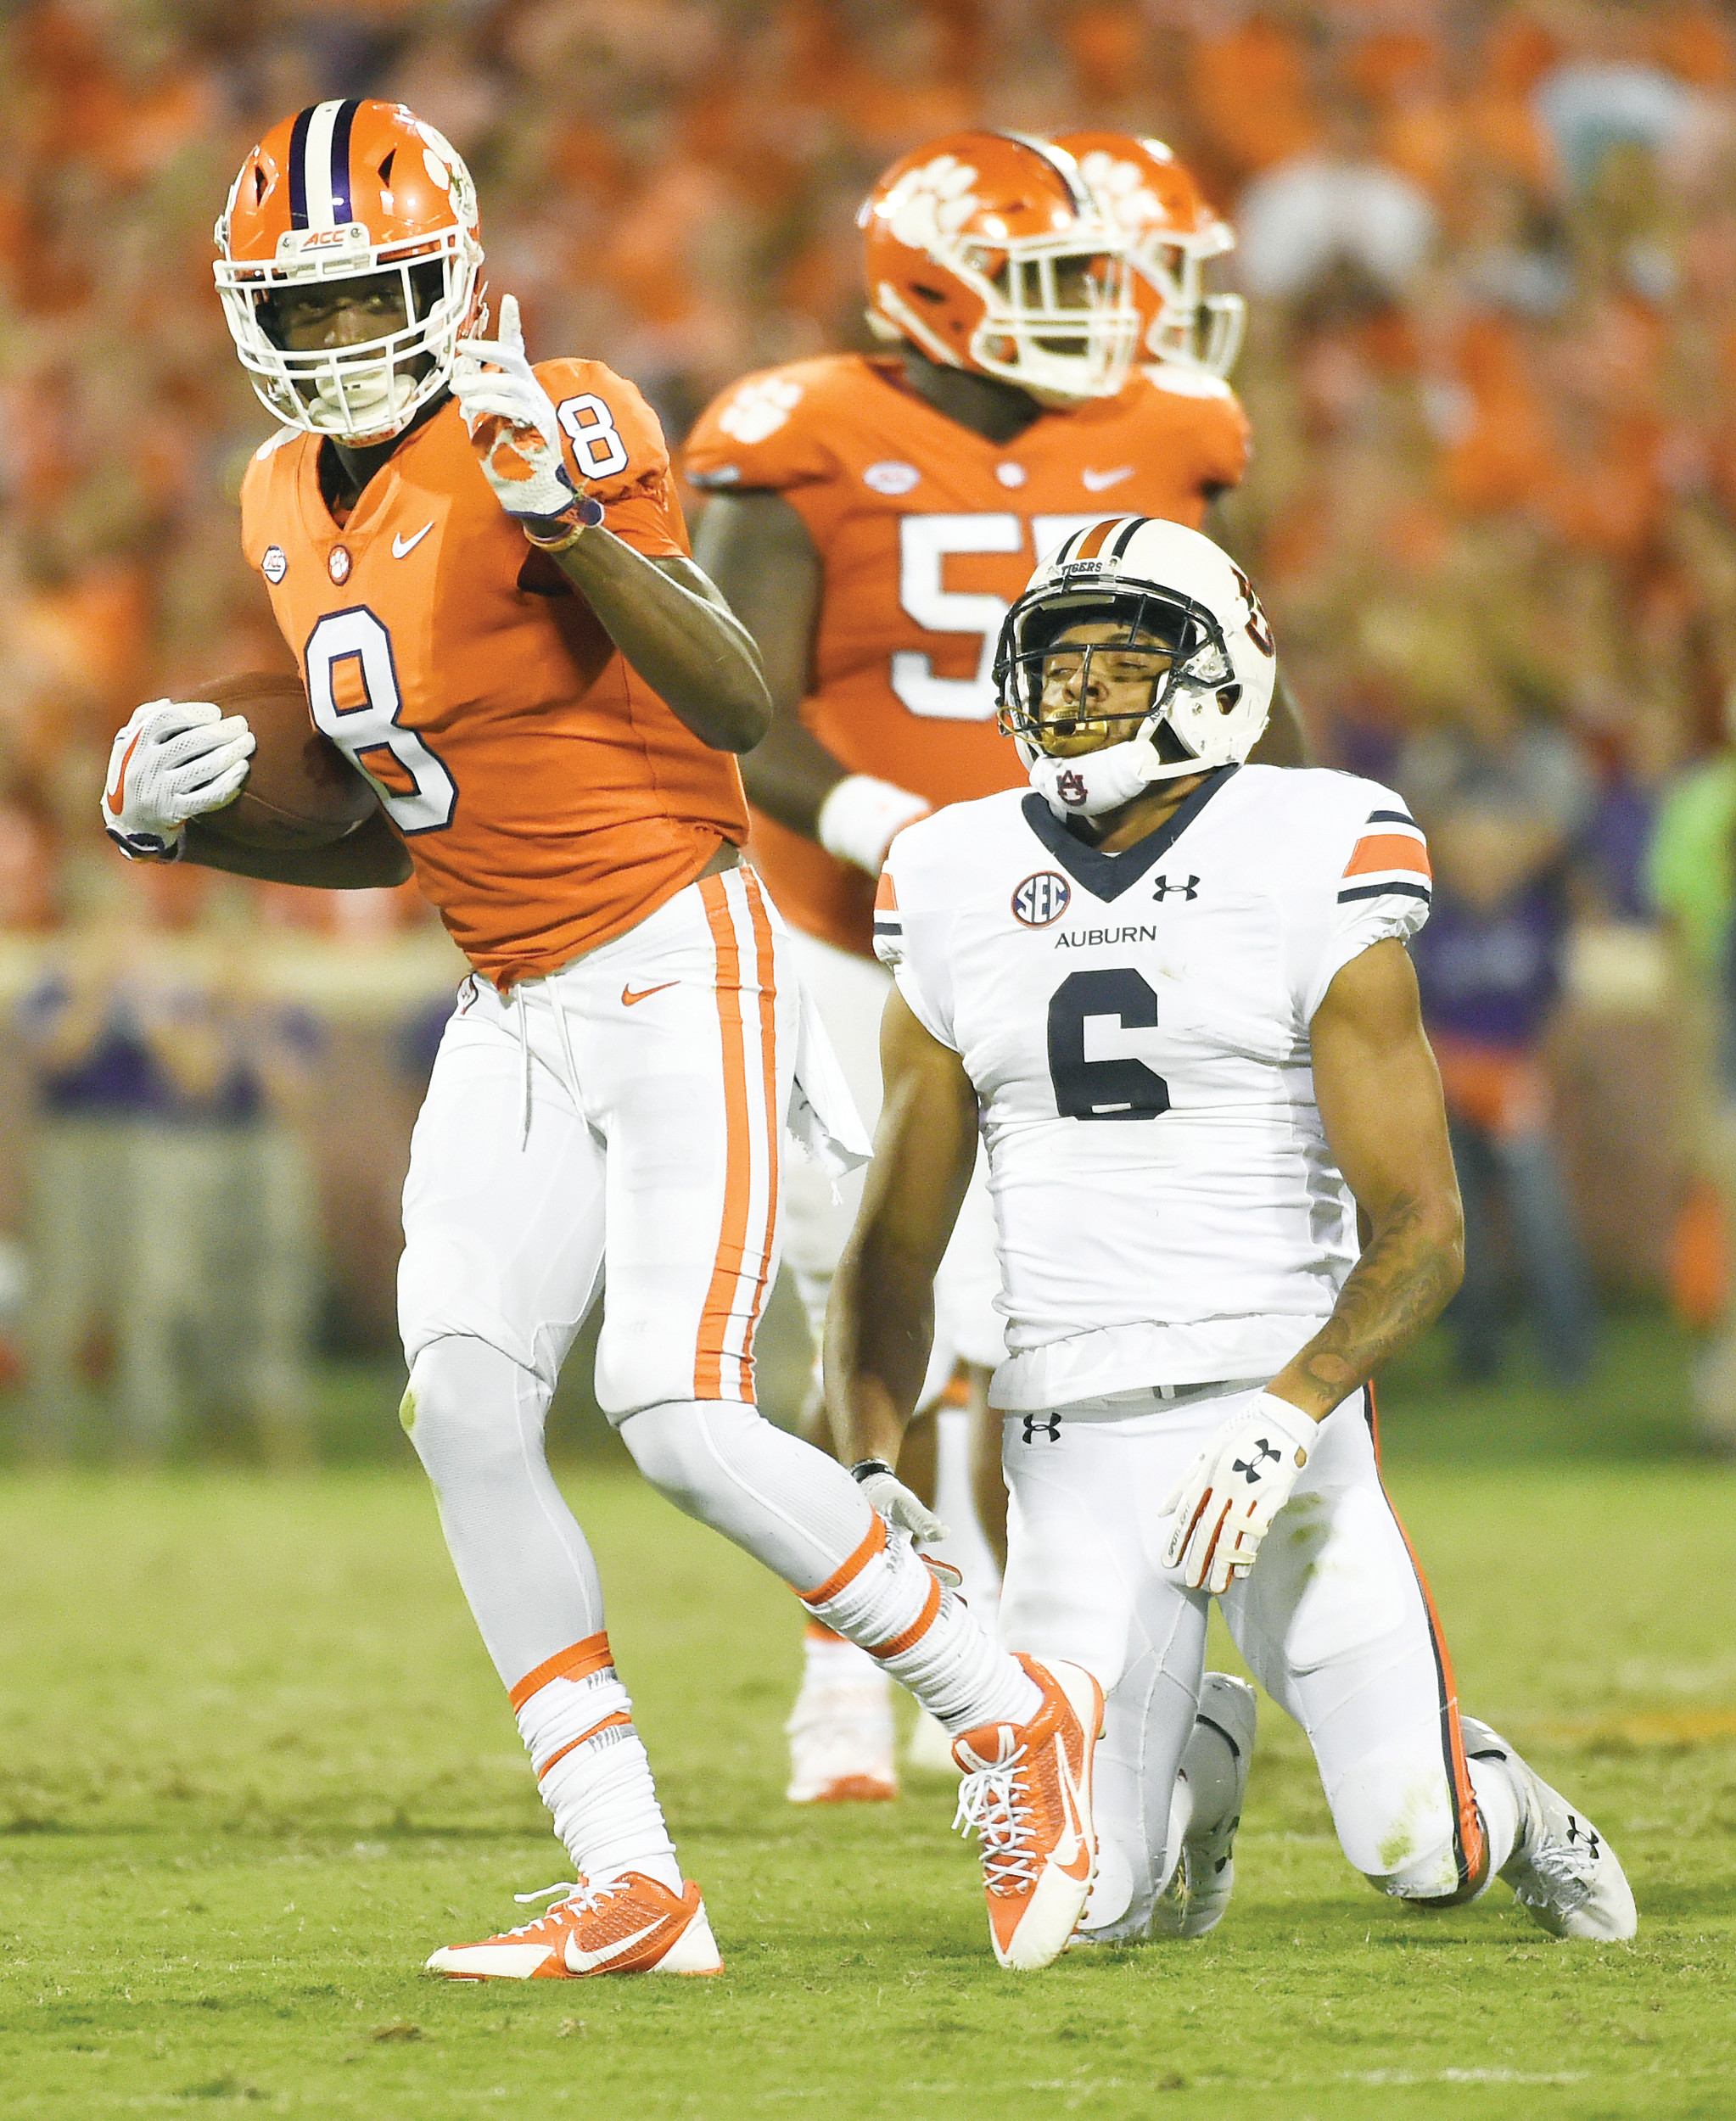 Clemson wide receiver Deon Cain (8) gestures after making a catch as Auburn defensive back Carlton Davis (6) reacts during Clemson's 14-6 victory on Saturday at Memorial Stadium in Clemson.